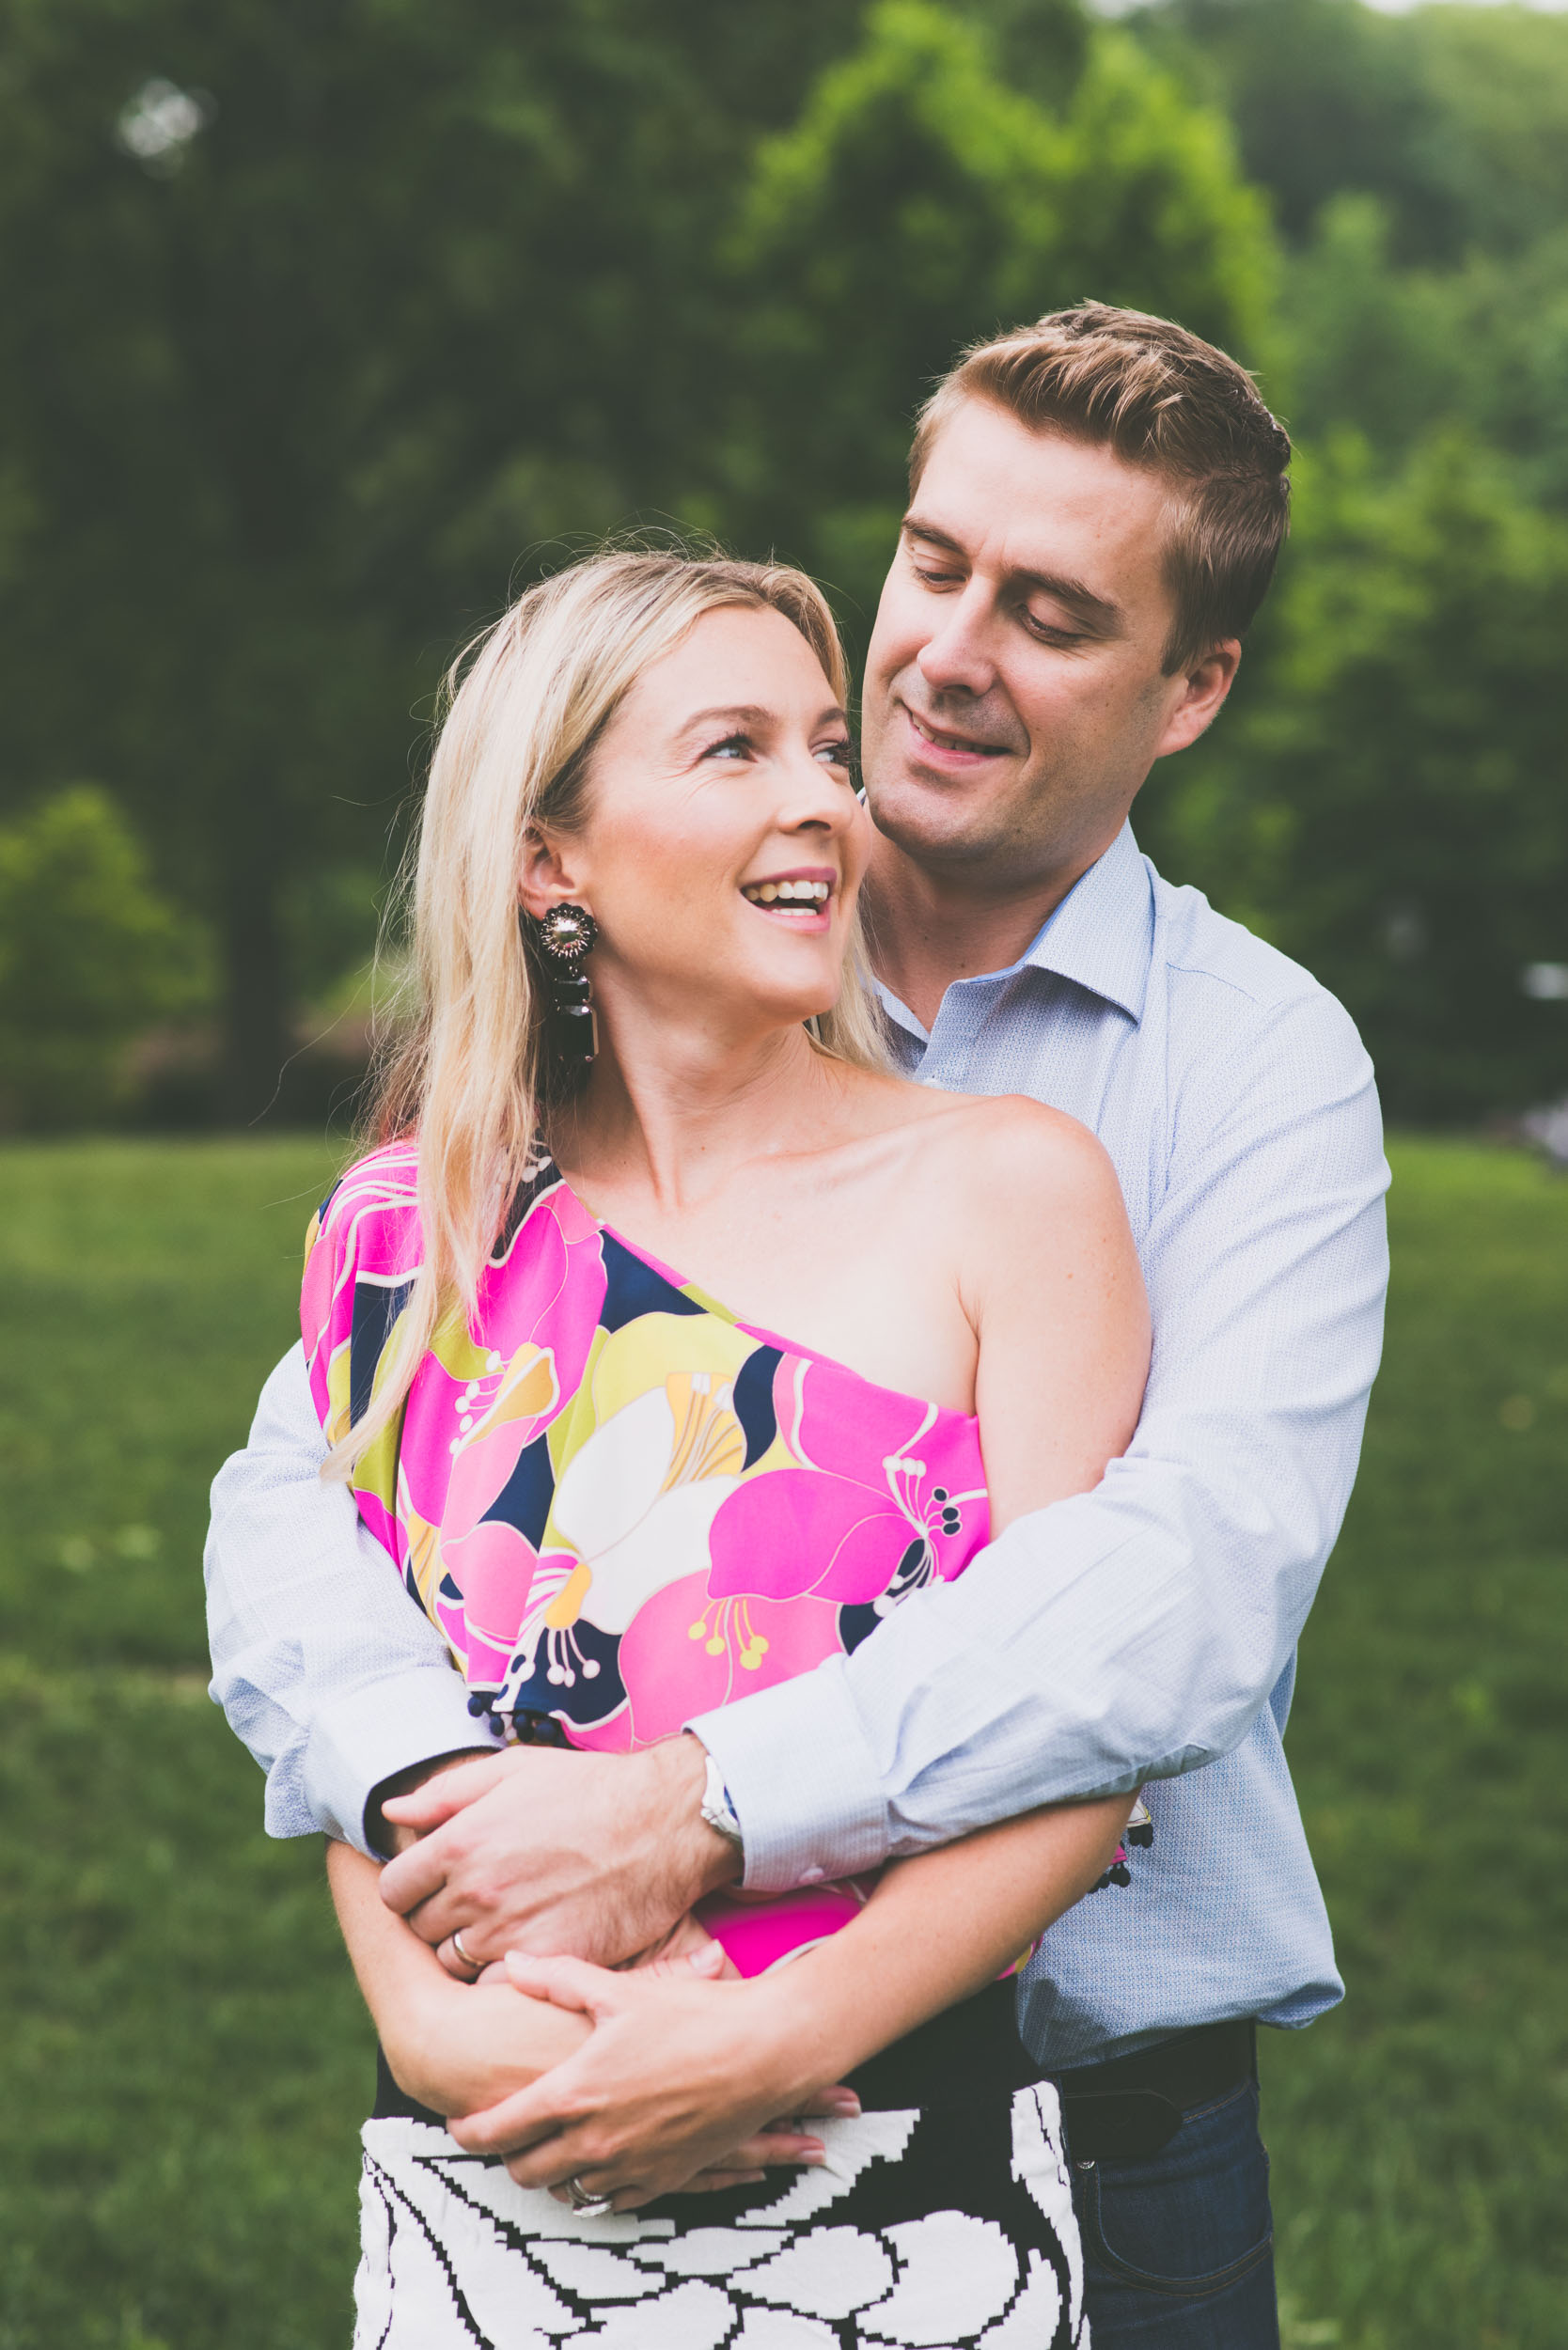 Green background looking down - Engagement Portraits - Photo credit Nicola Bailey.jpg